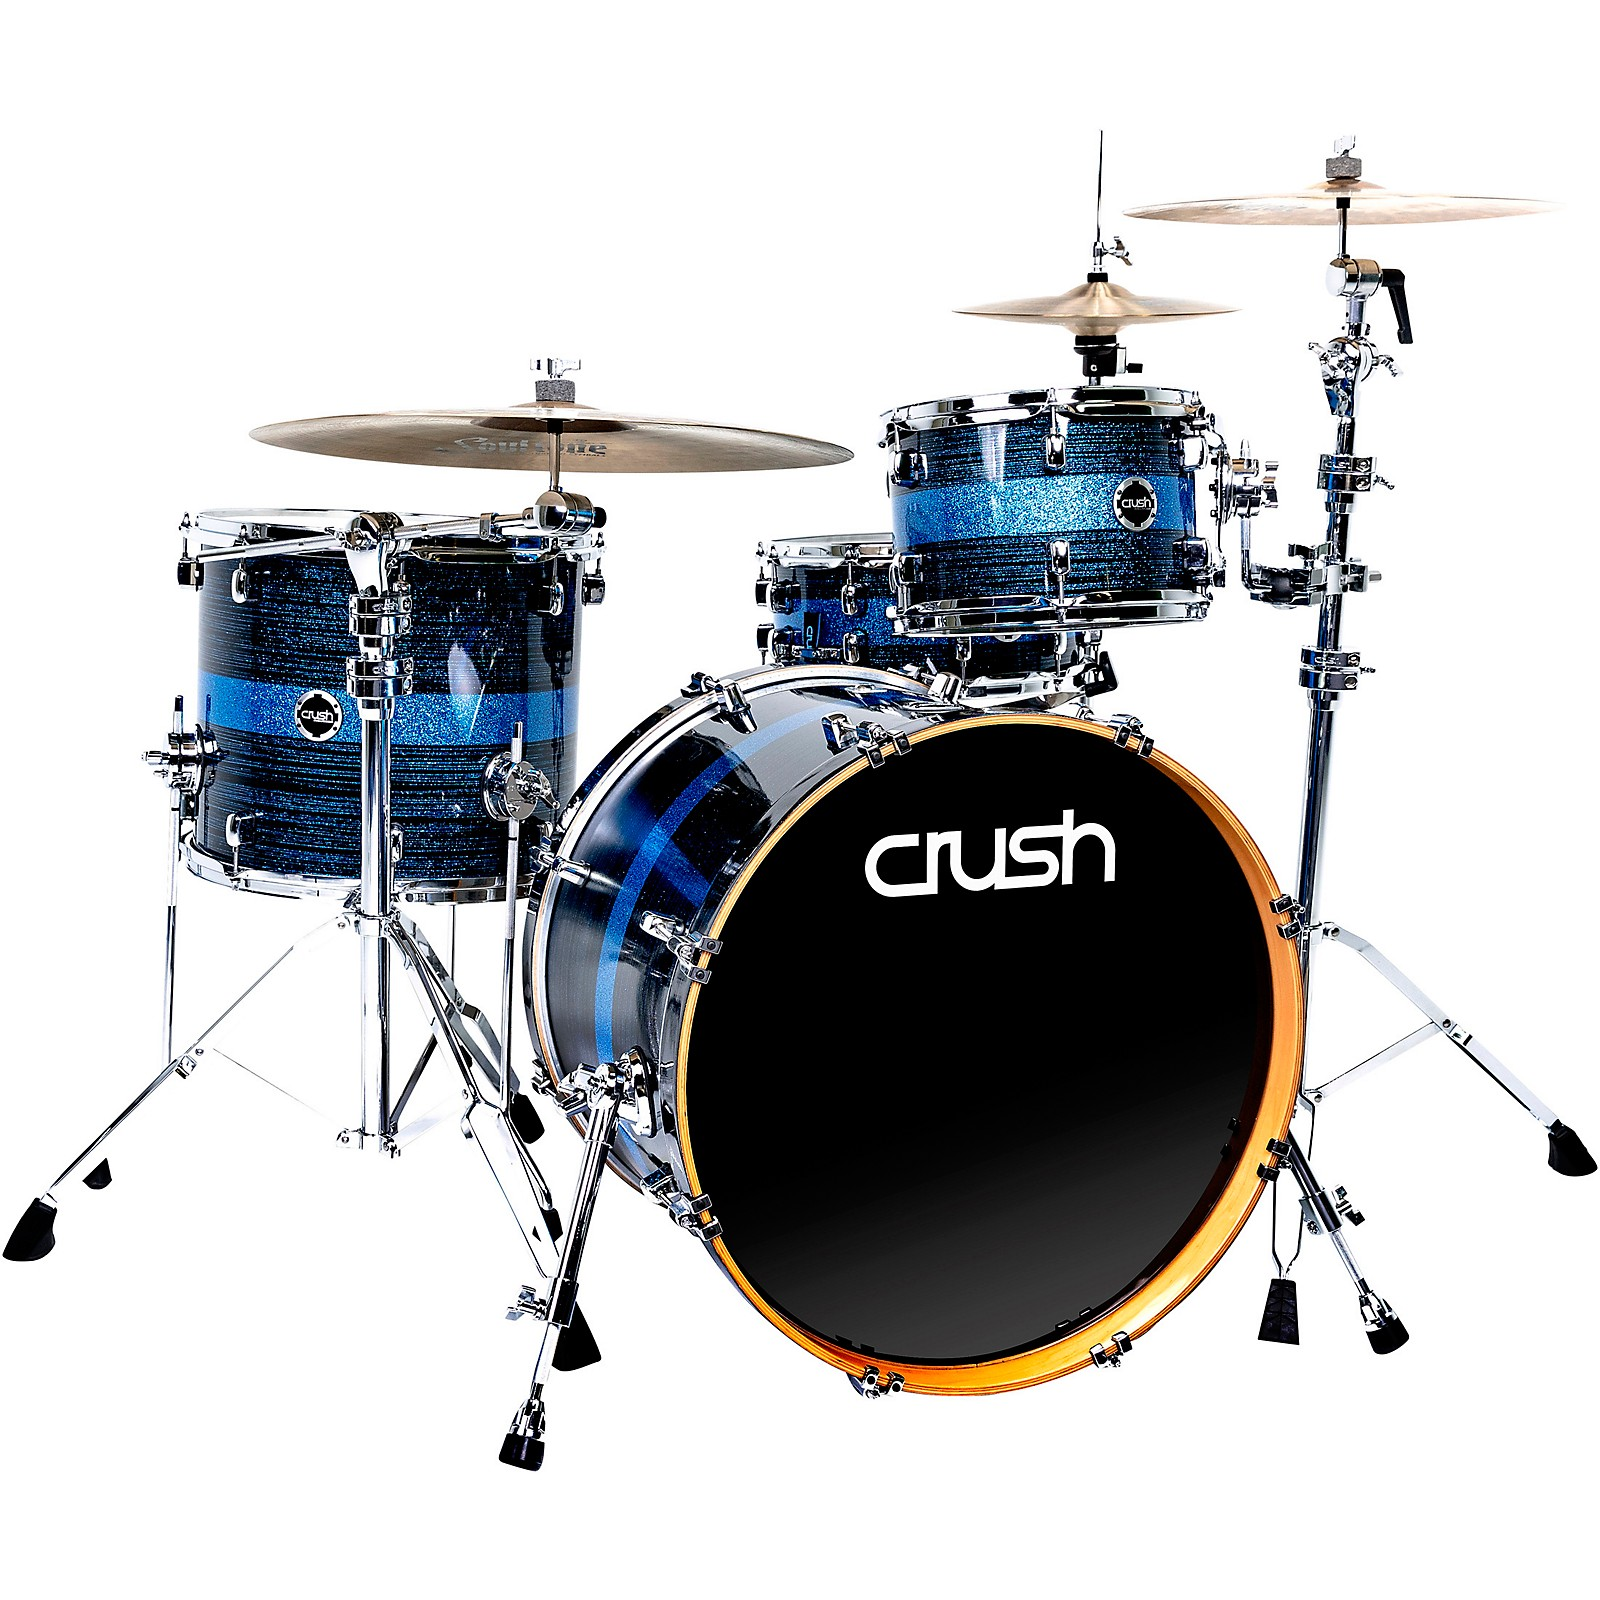 Crush Drums & Percussion Sublime ST Maple 3-Piece Shell Pack with 22 in. Bass Drum